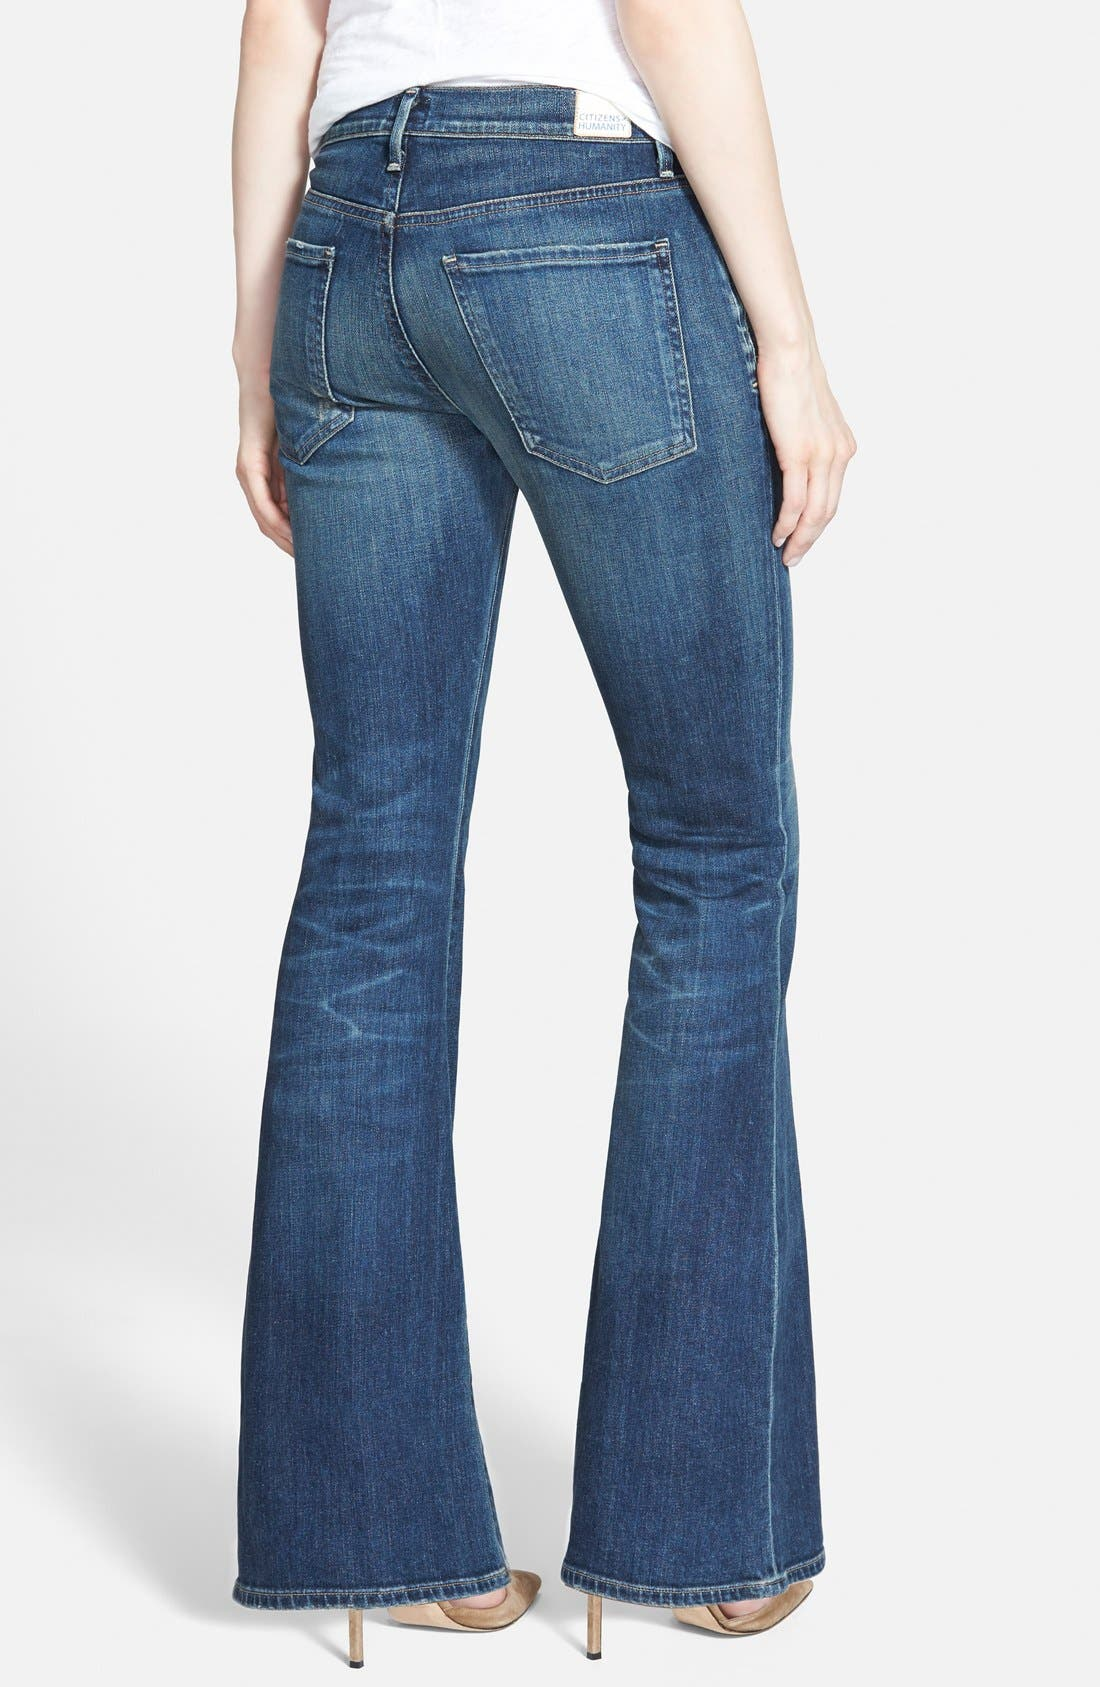 Alternate Image 2  - Citizens of Humanity 'Fleetwood' High Rise Flare Jeans (Harvest Moon) (Petite)